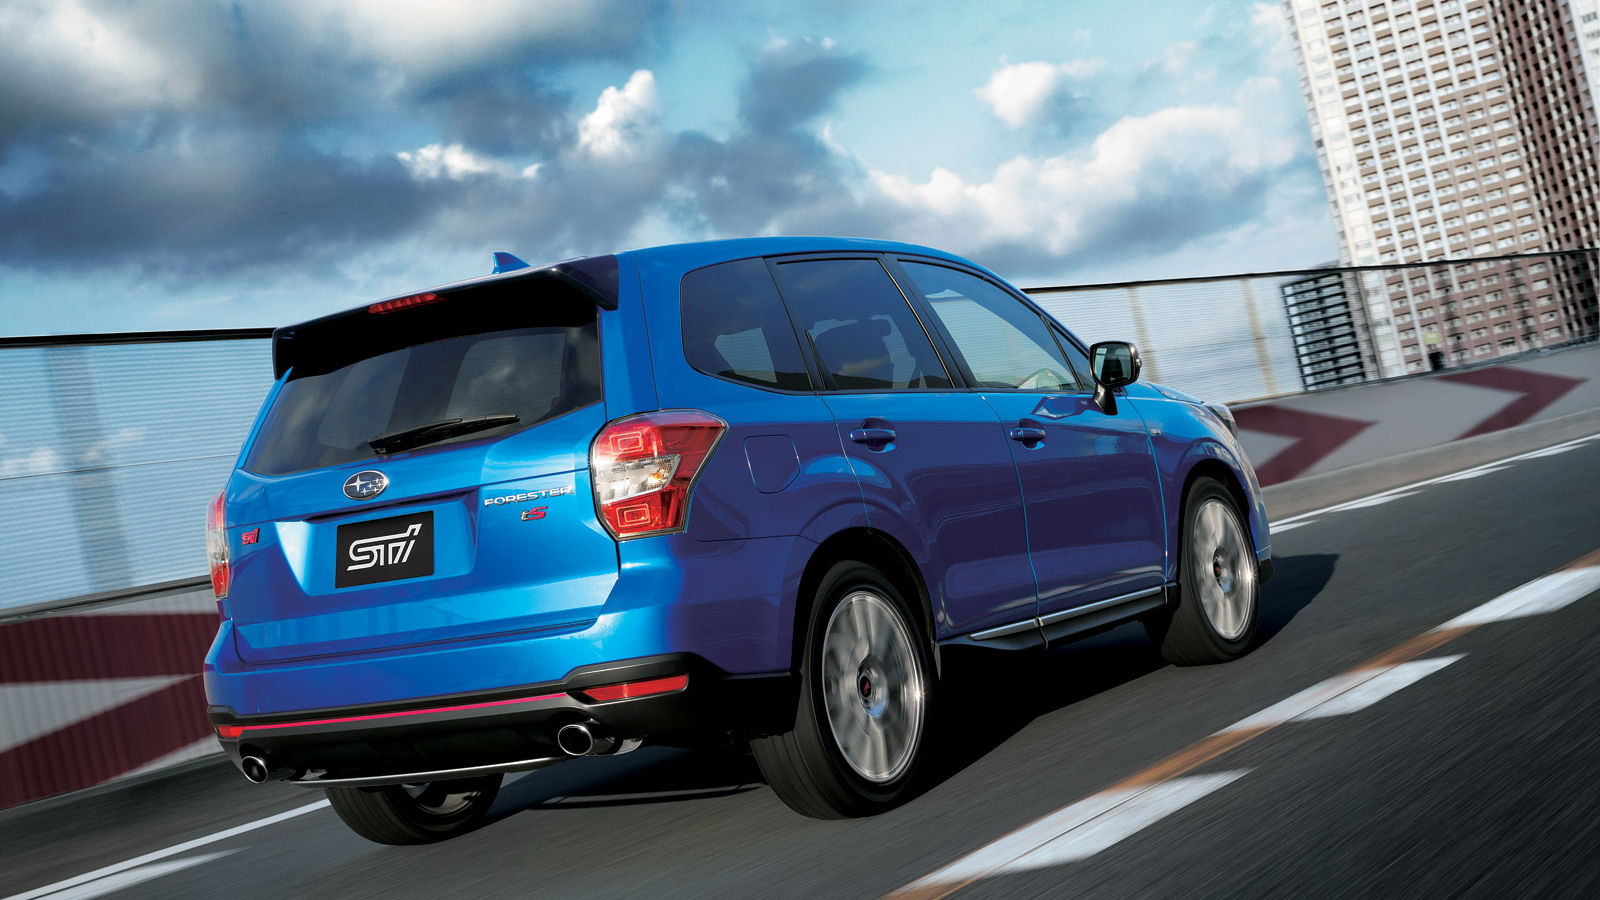 Forester Ts Sti >> Subaru Releases Sti Enhanced Forester Ts In Japan